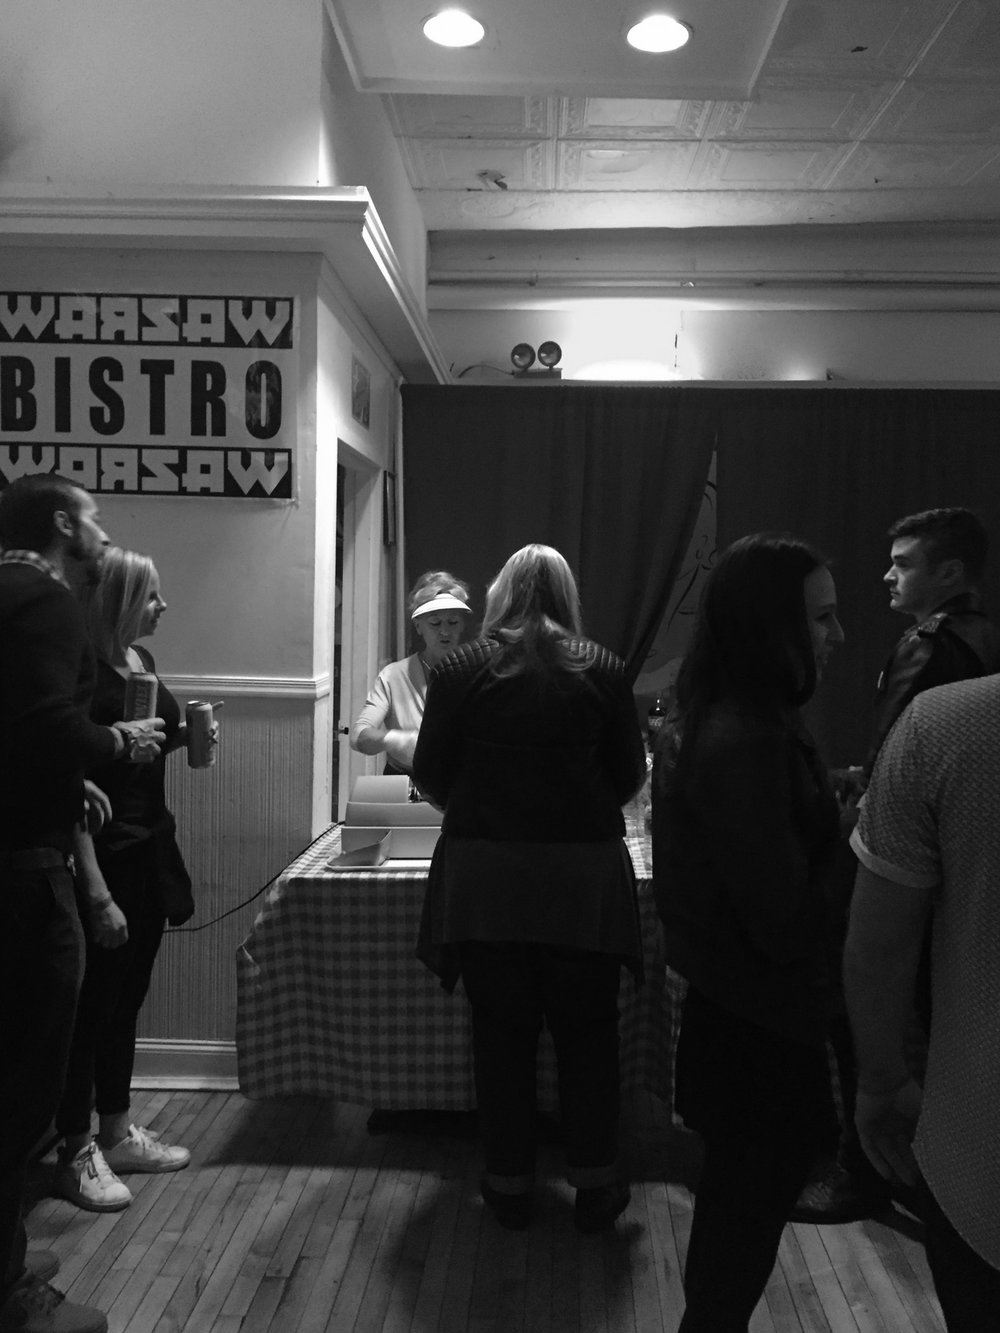 Patrons line up to get a taste of the Polish fare served up at the Bistro inside Warsaw.